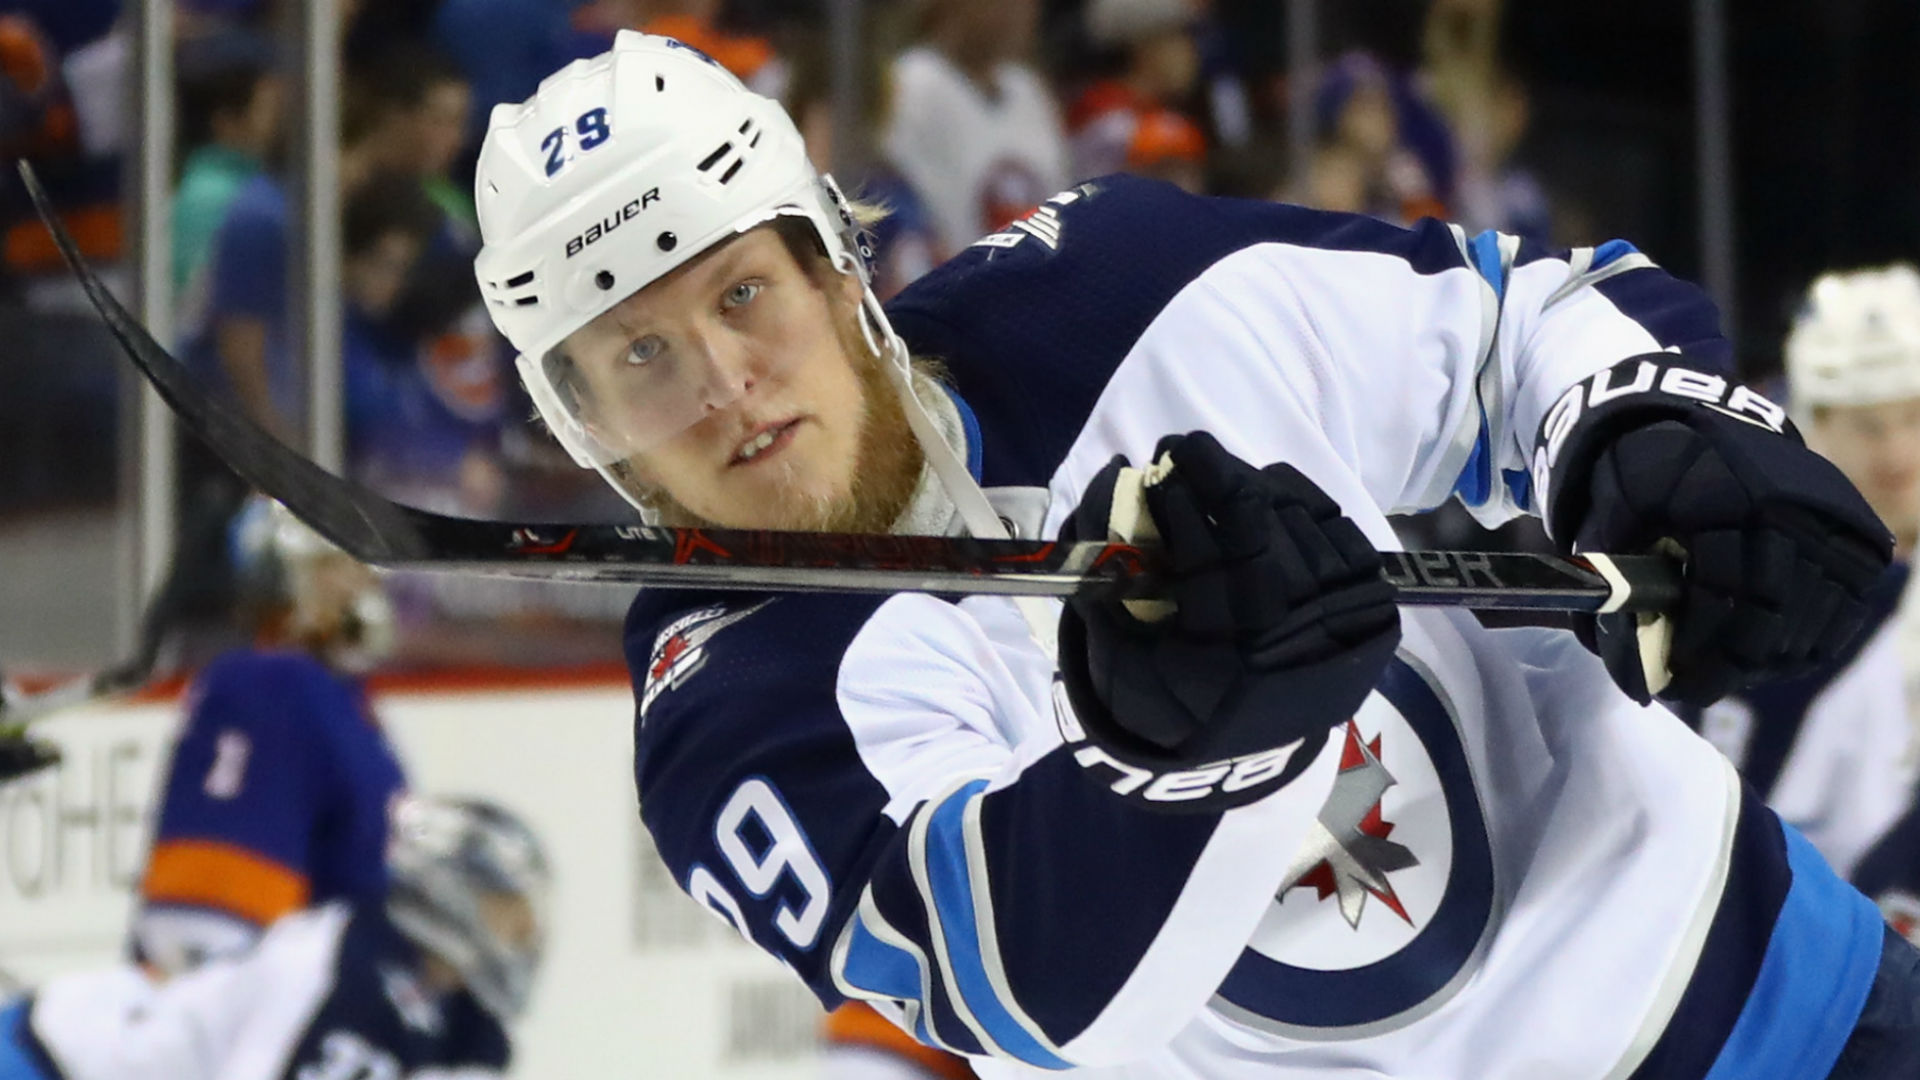 Laine Patrik Laine Puts Nhl On Notice With Pedigree Personality Of Next